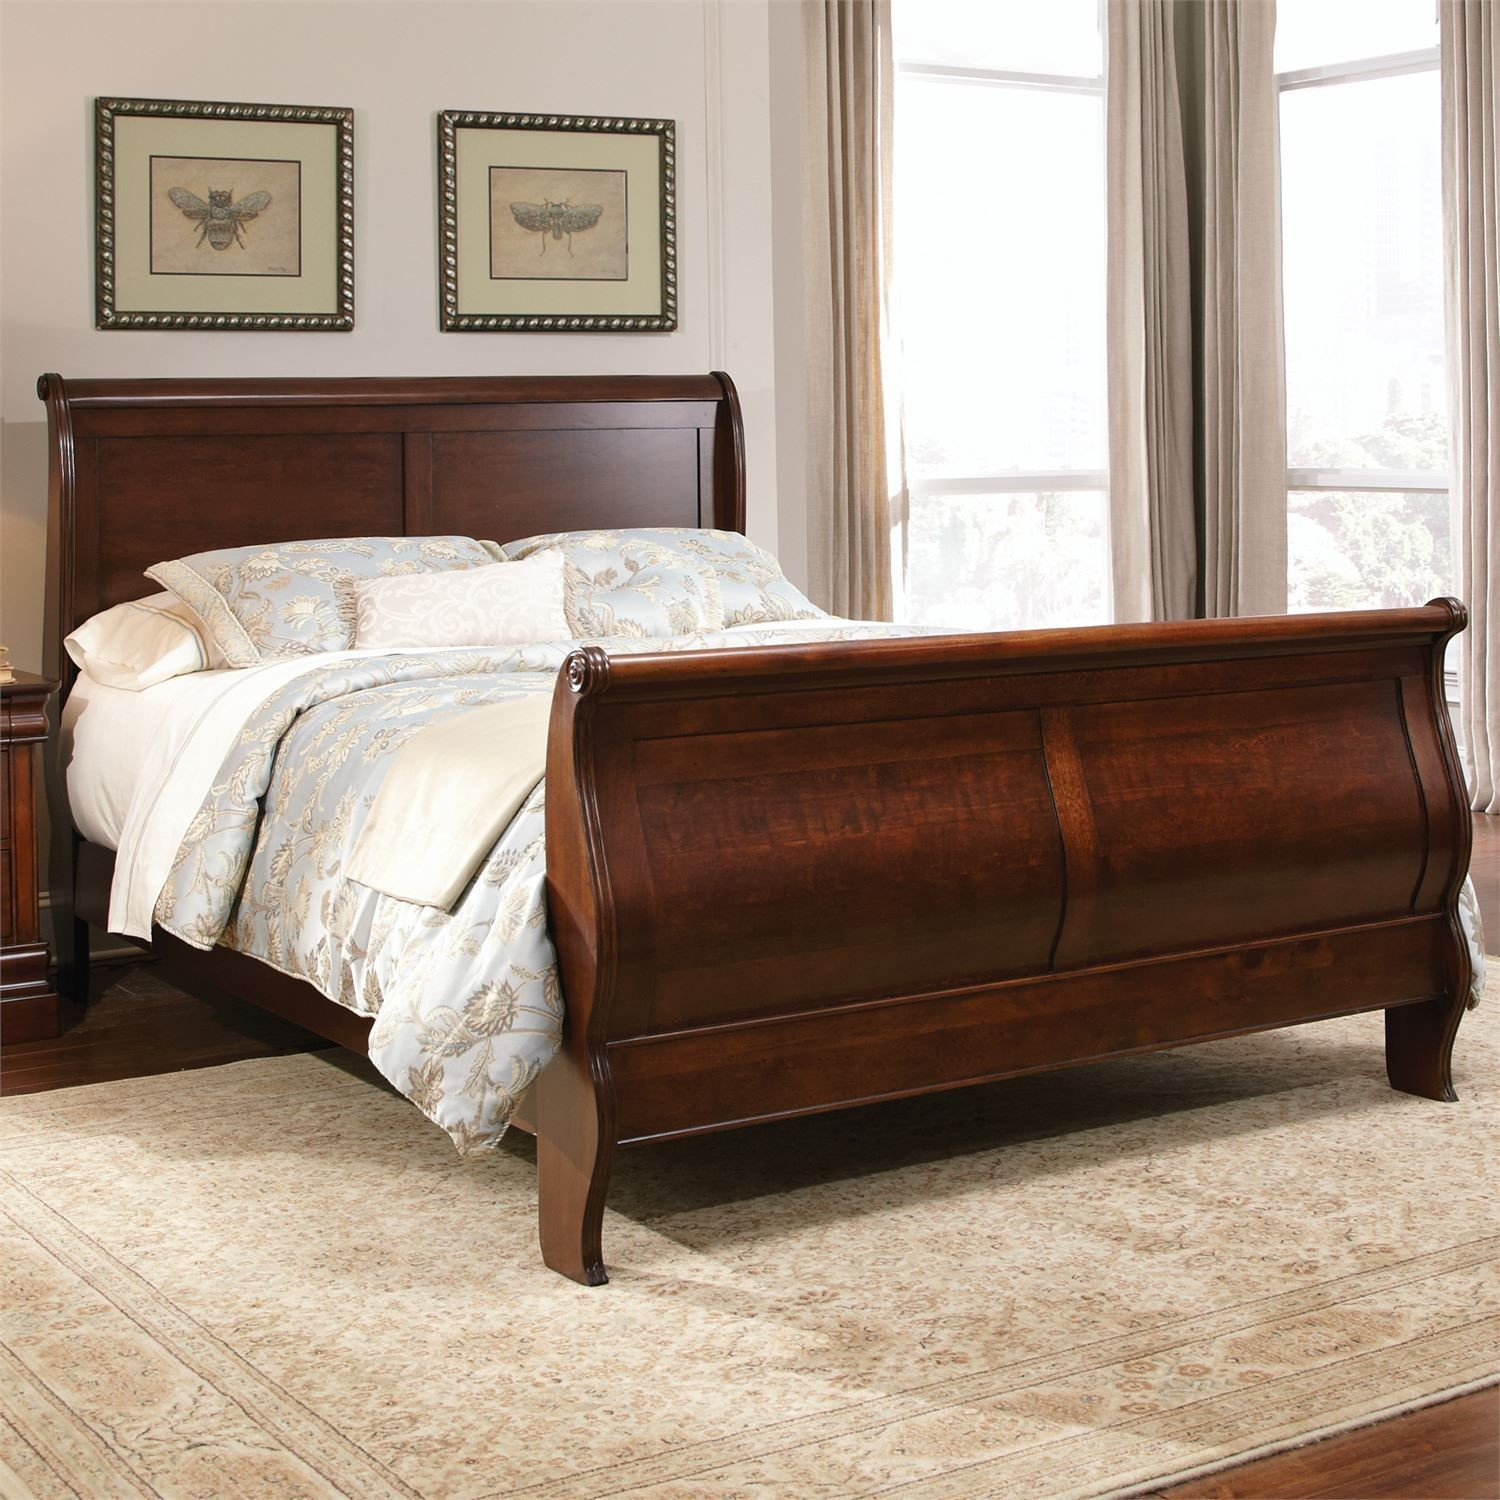 Luxury Sleigh Beds